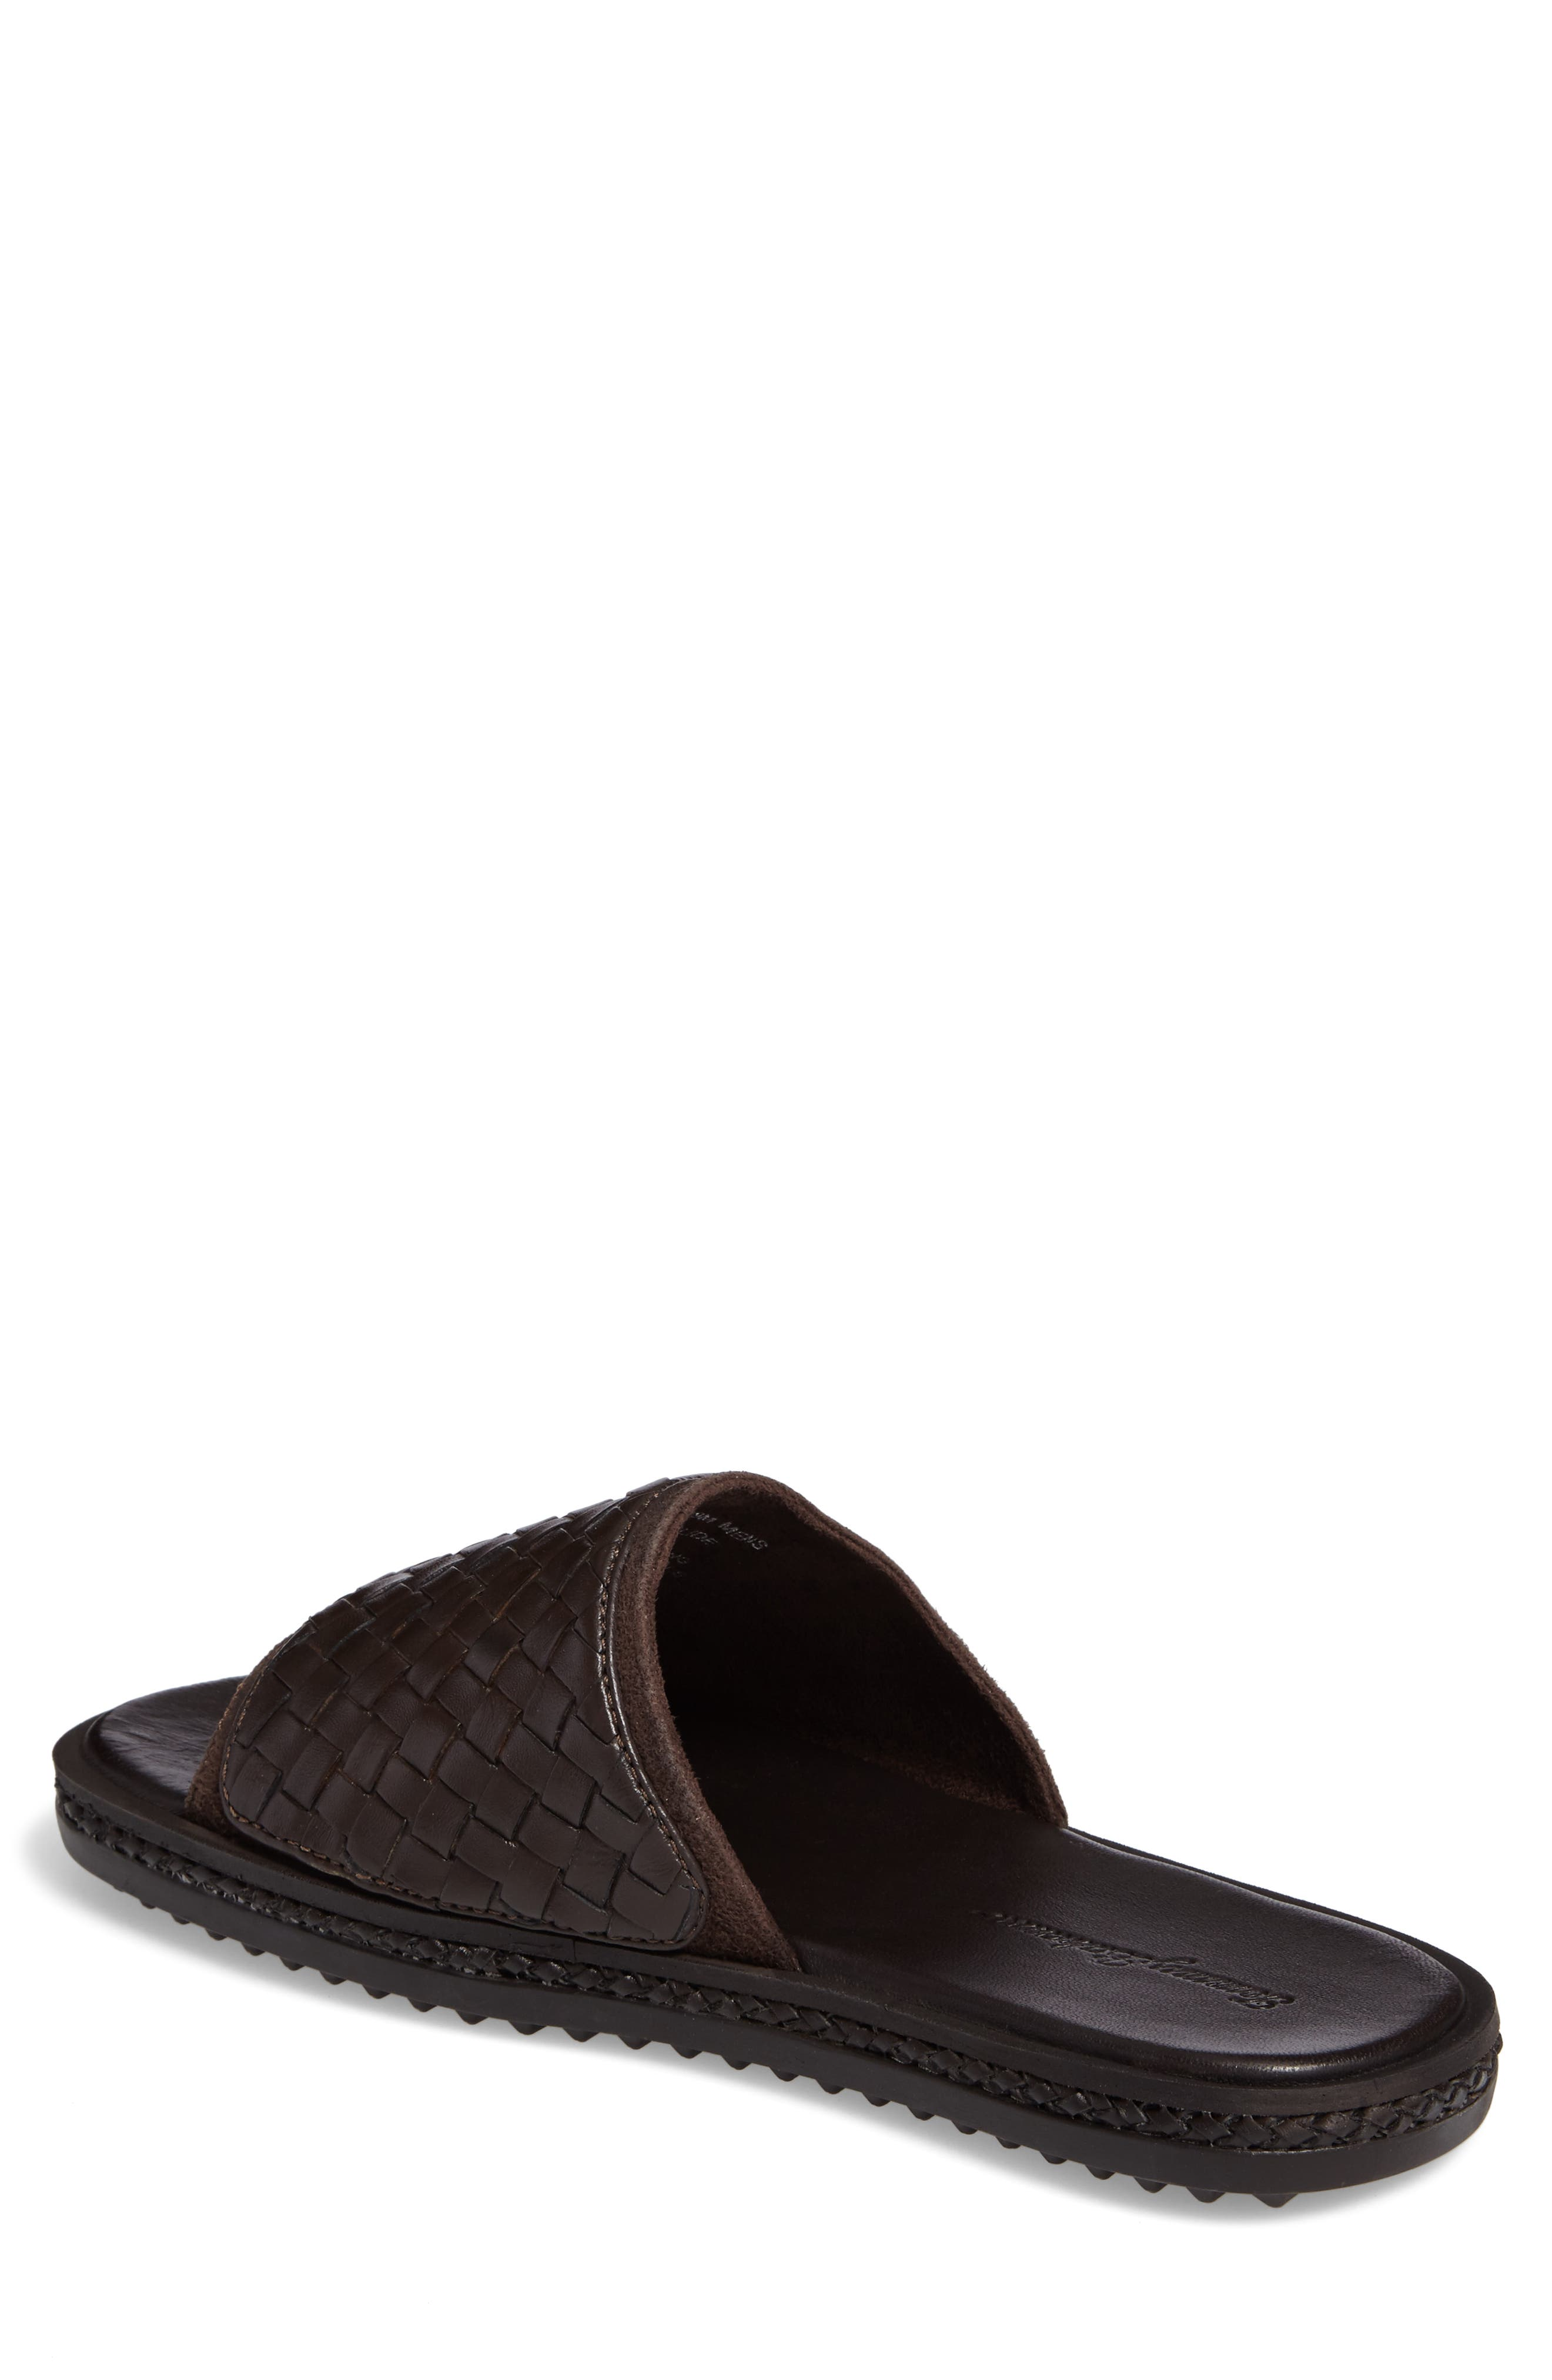 Shore Crest Woven Slide Sandal,                             Alternate thumbnail 2, color,                             Dark Brown